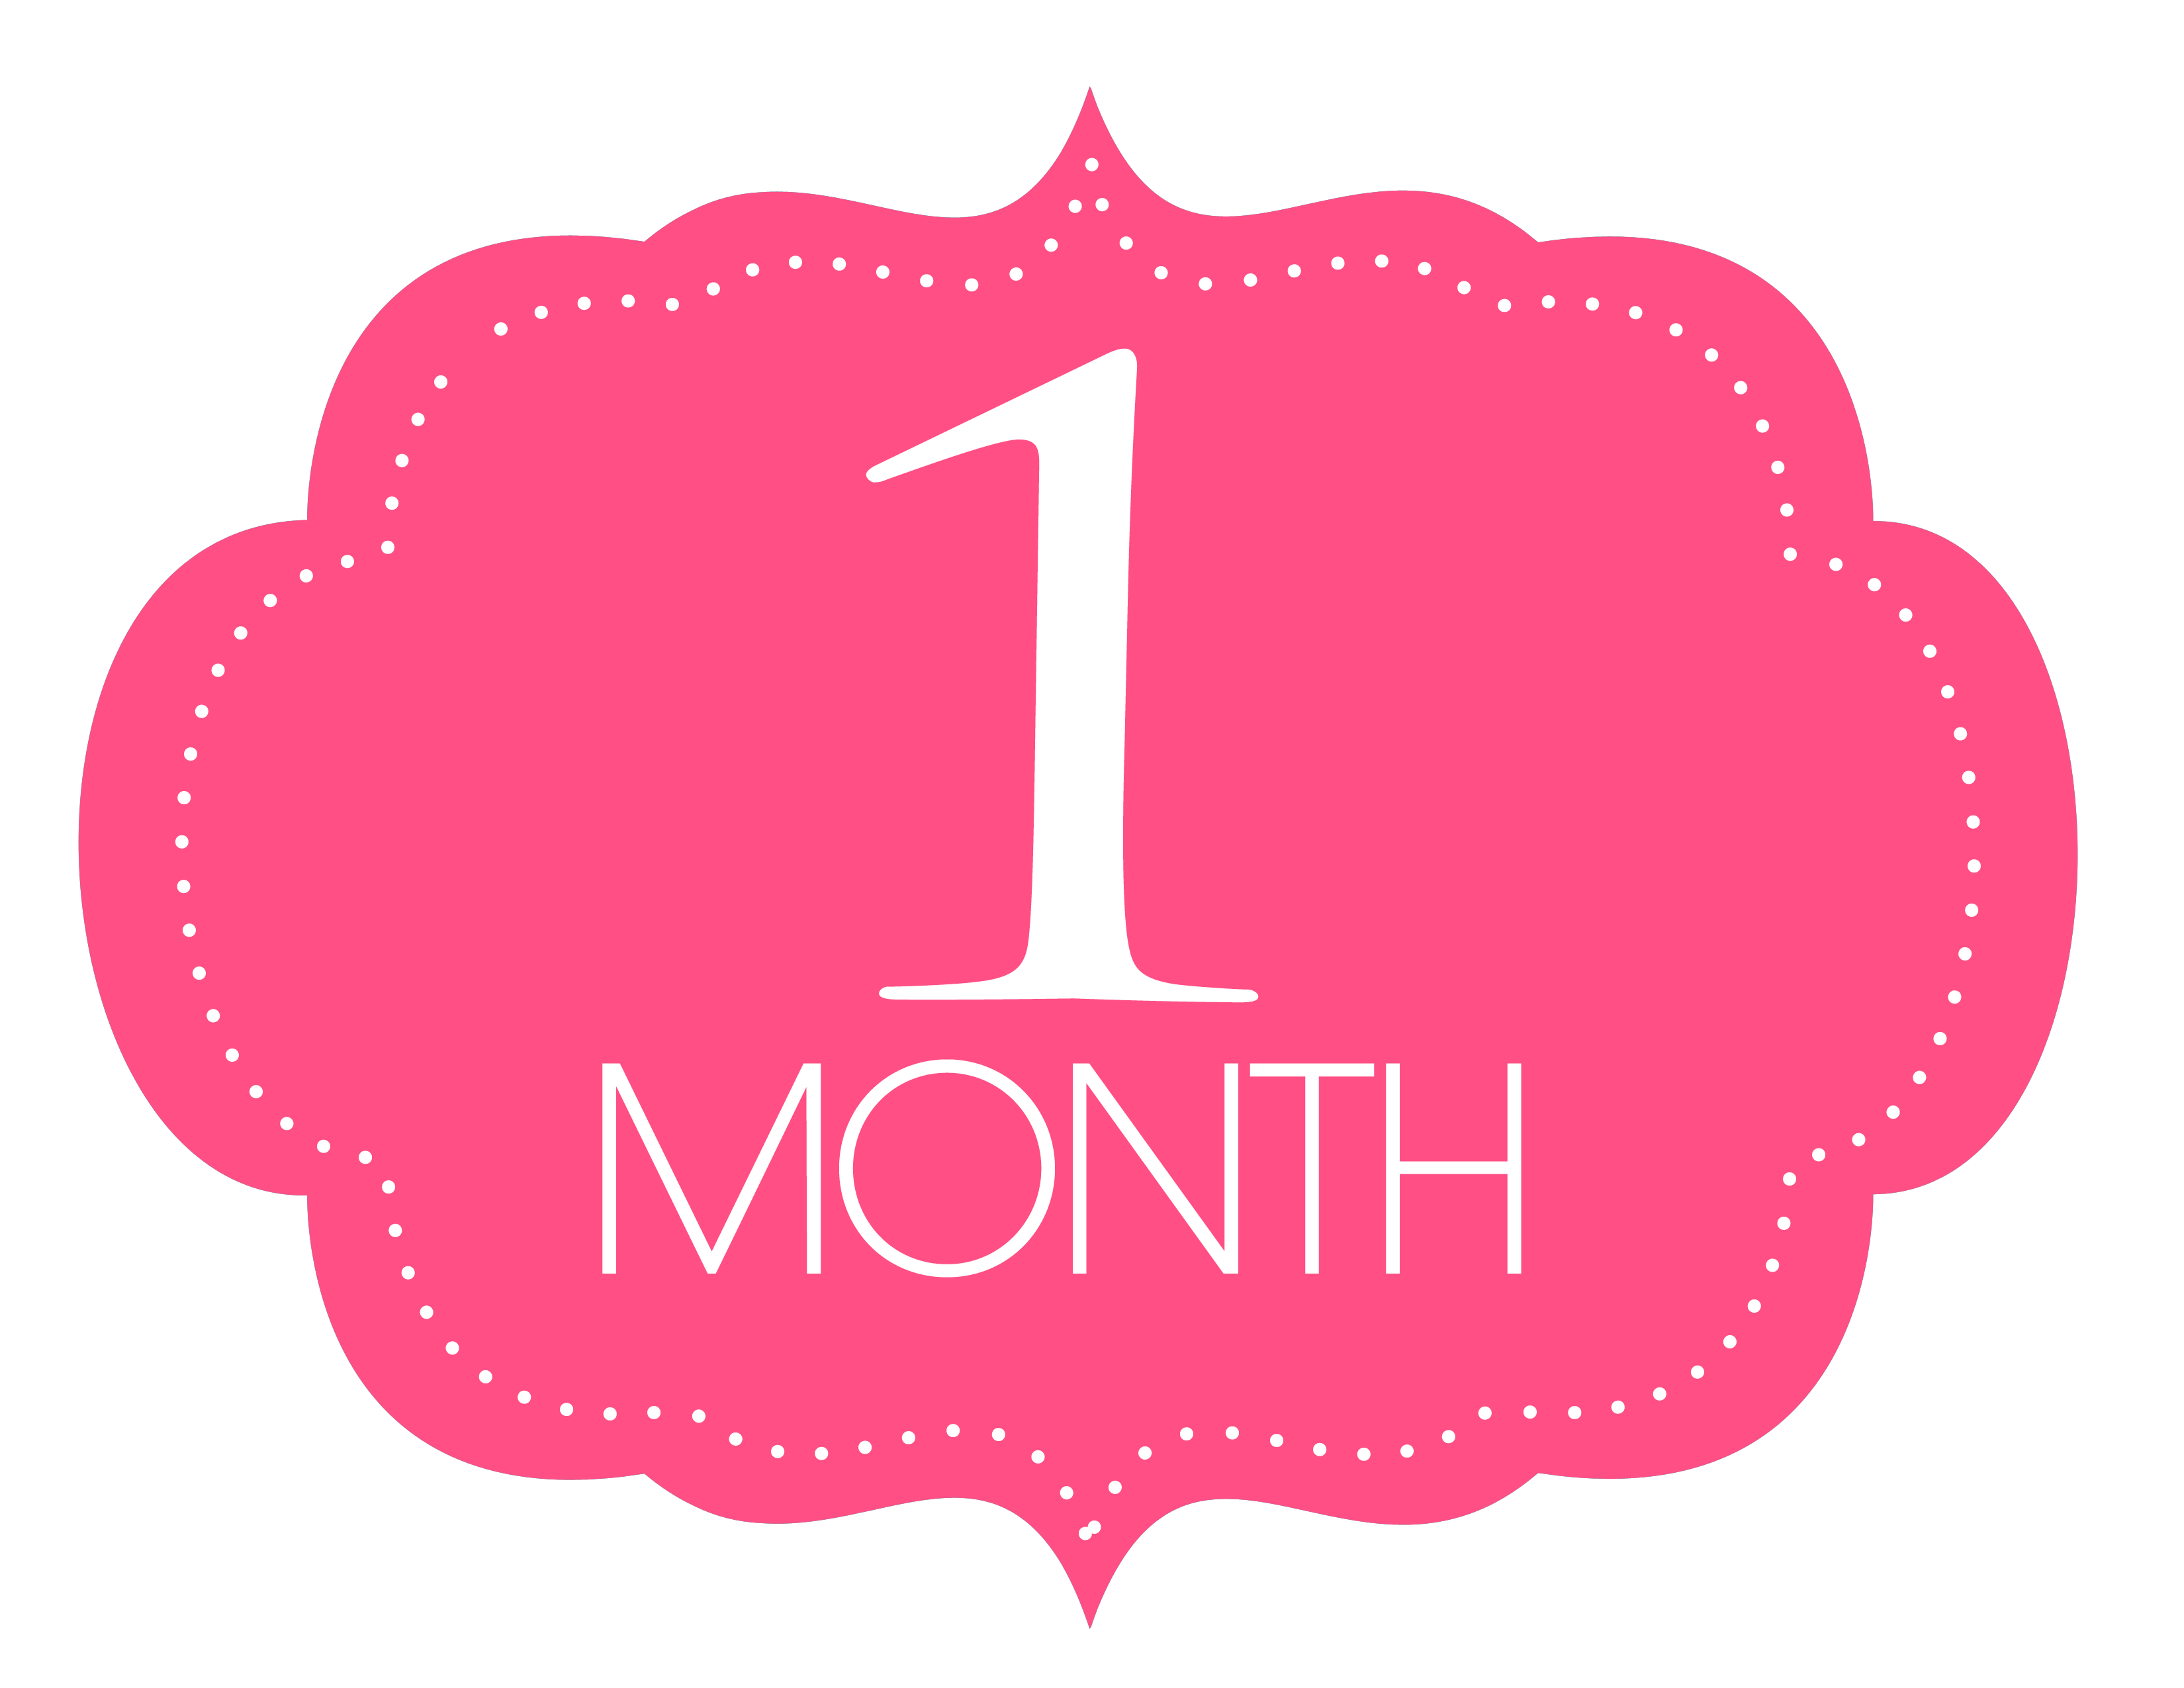 Free Printable 1 Month Old Sign 1 Month Old Baby, One Month Old, Happy